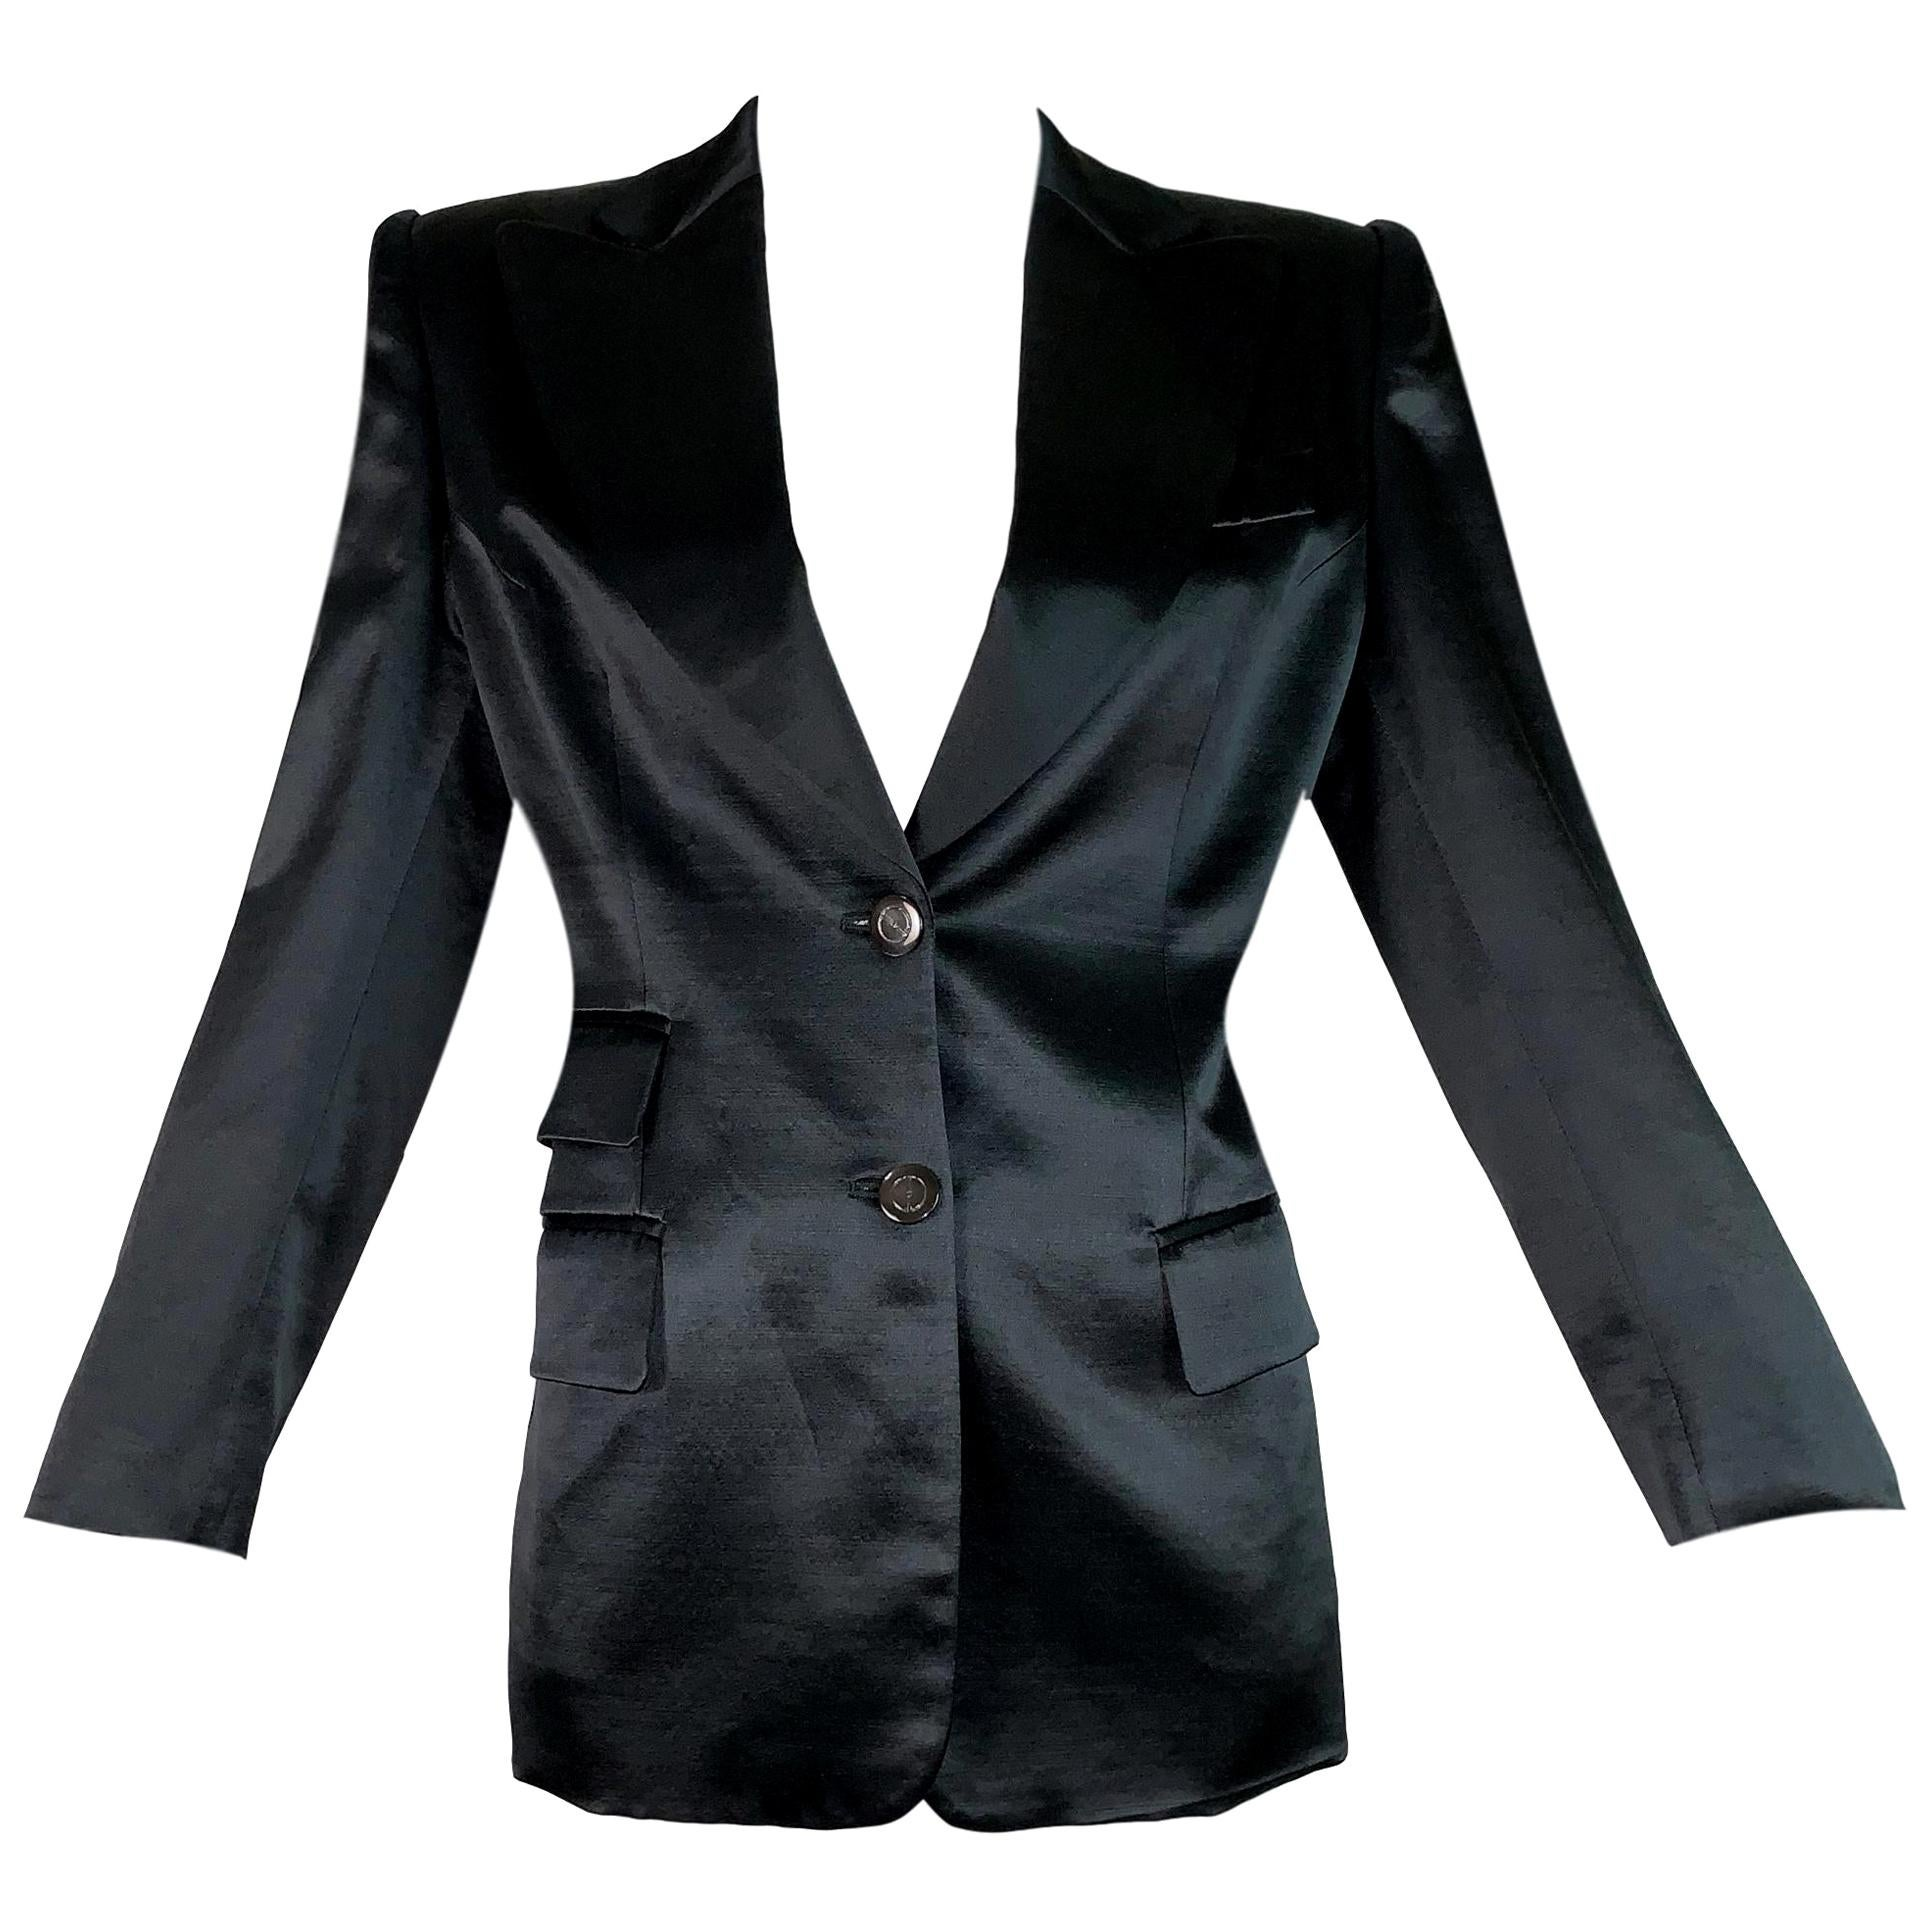 3408ab52fca Tuxedo Jackets - 107 For Sale on 1stdibs